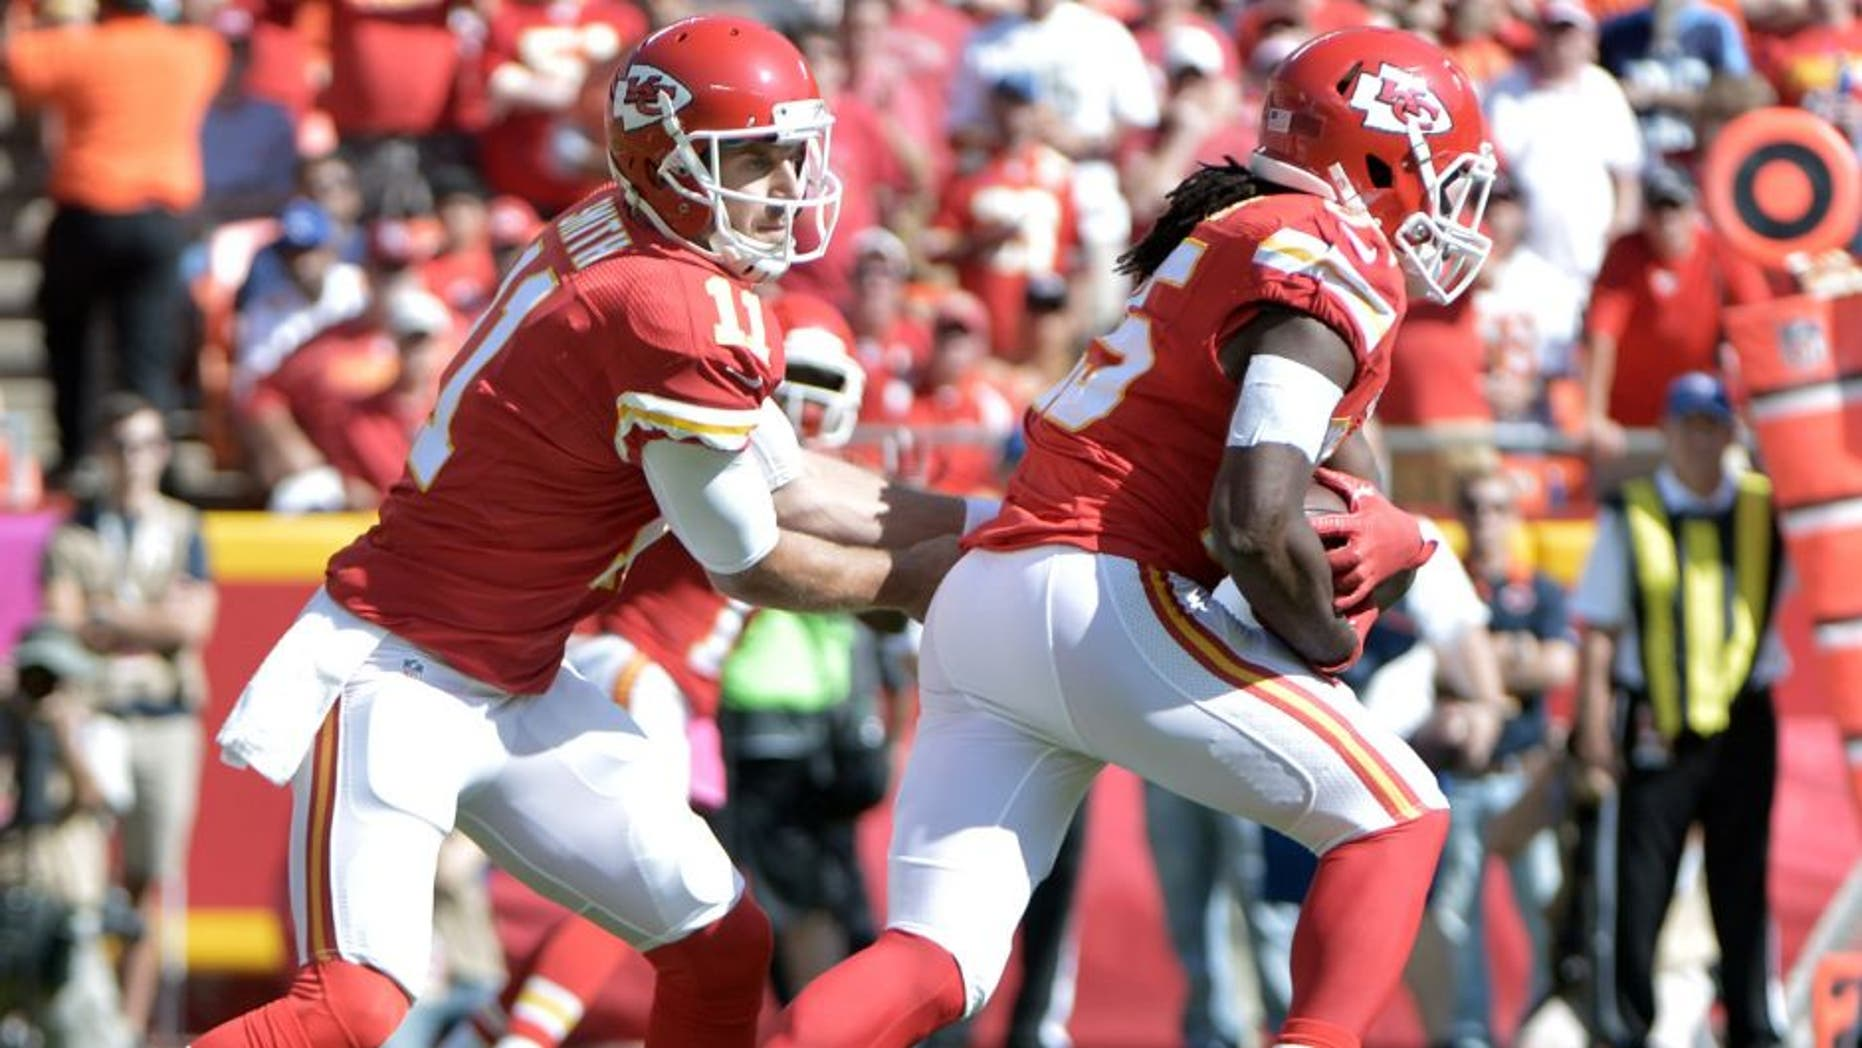 Oct 11, 2015; Kansas City, MO, USA; Kansas City Chiefs quarterback Alex Smith (11) hands off to running back Jamaal Charles (25) during the first half against the Chicago Bears at Arrowhead Stadium. Mandatory Credit: Denny Medley-USA TODAY Sports